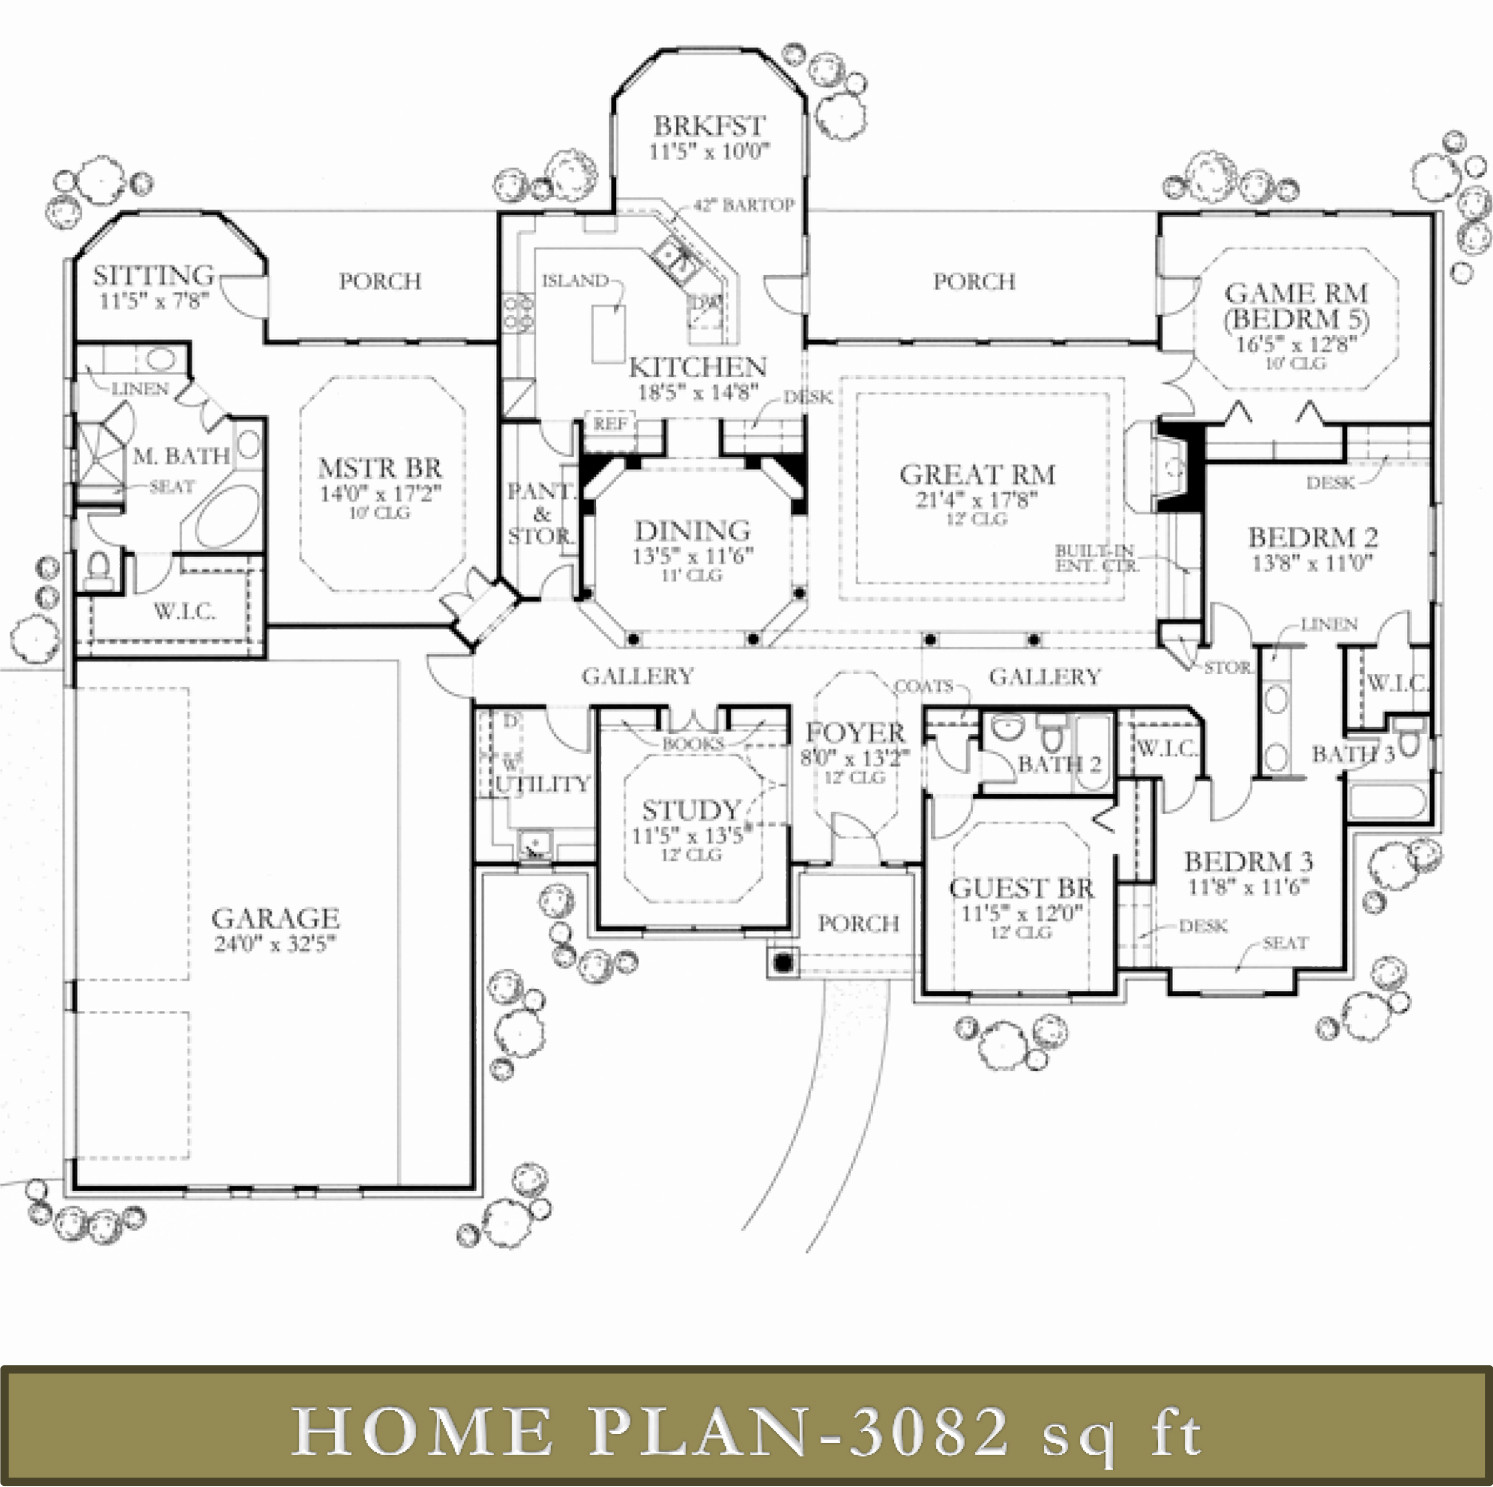 3000 3500 sq ft homes glazier homes for 3500 sq ft house plans